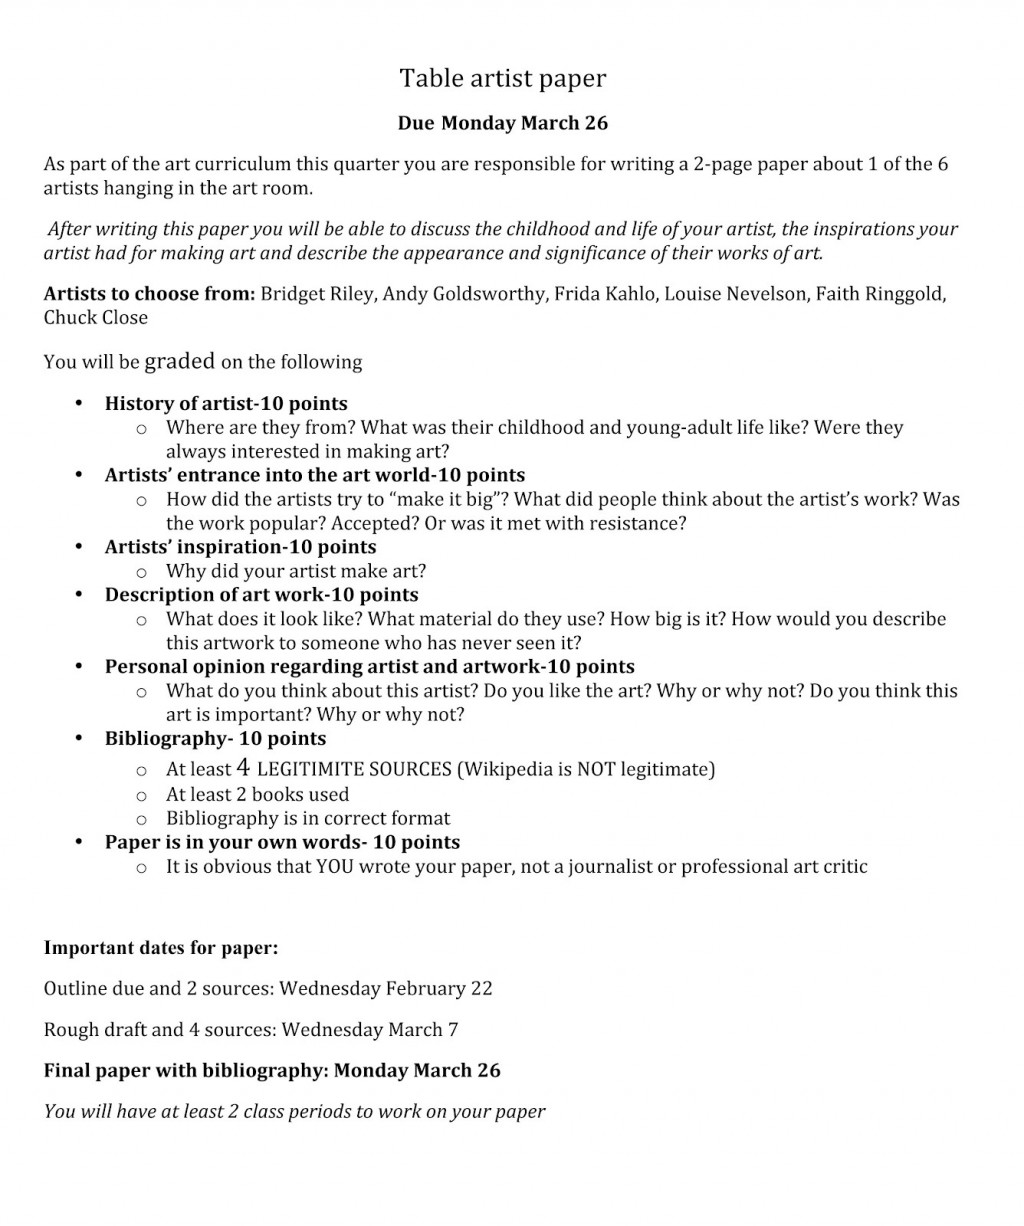 017 Great Research Paper Topics For College Astounding History Students Level Large